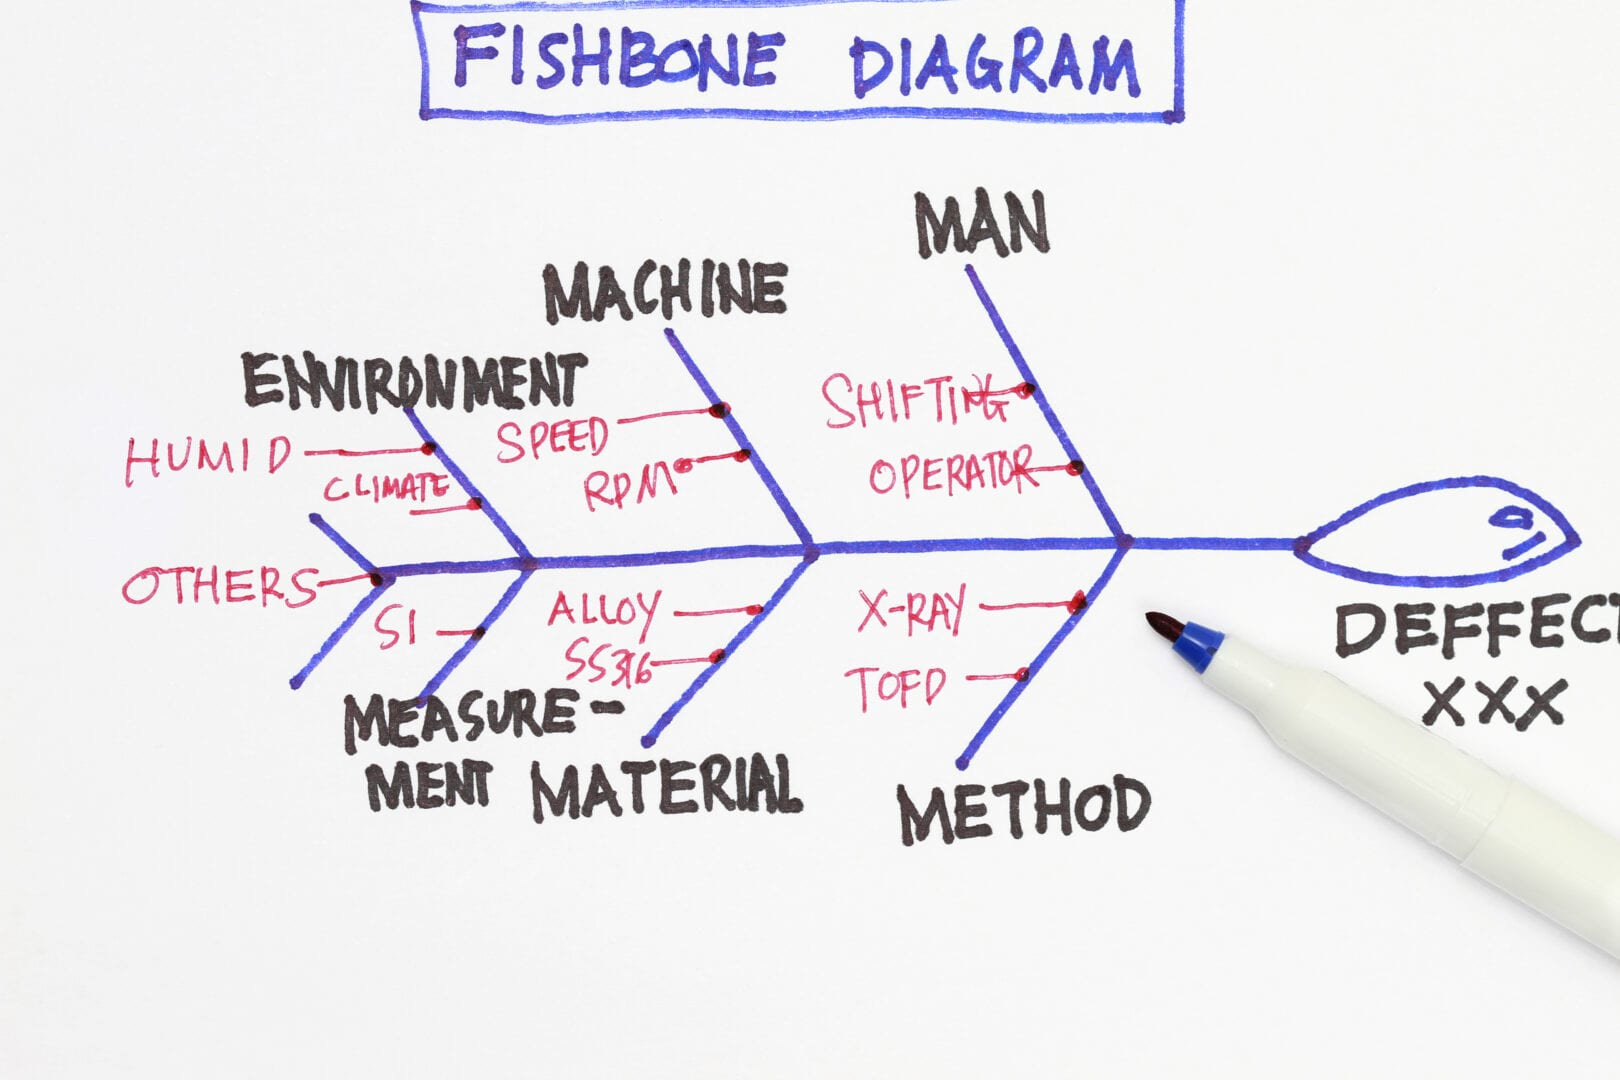 Fishbone diagram - many uses in the manufacturing industry.